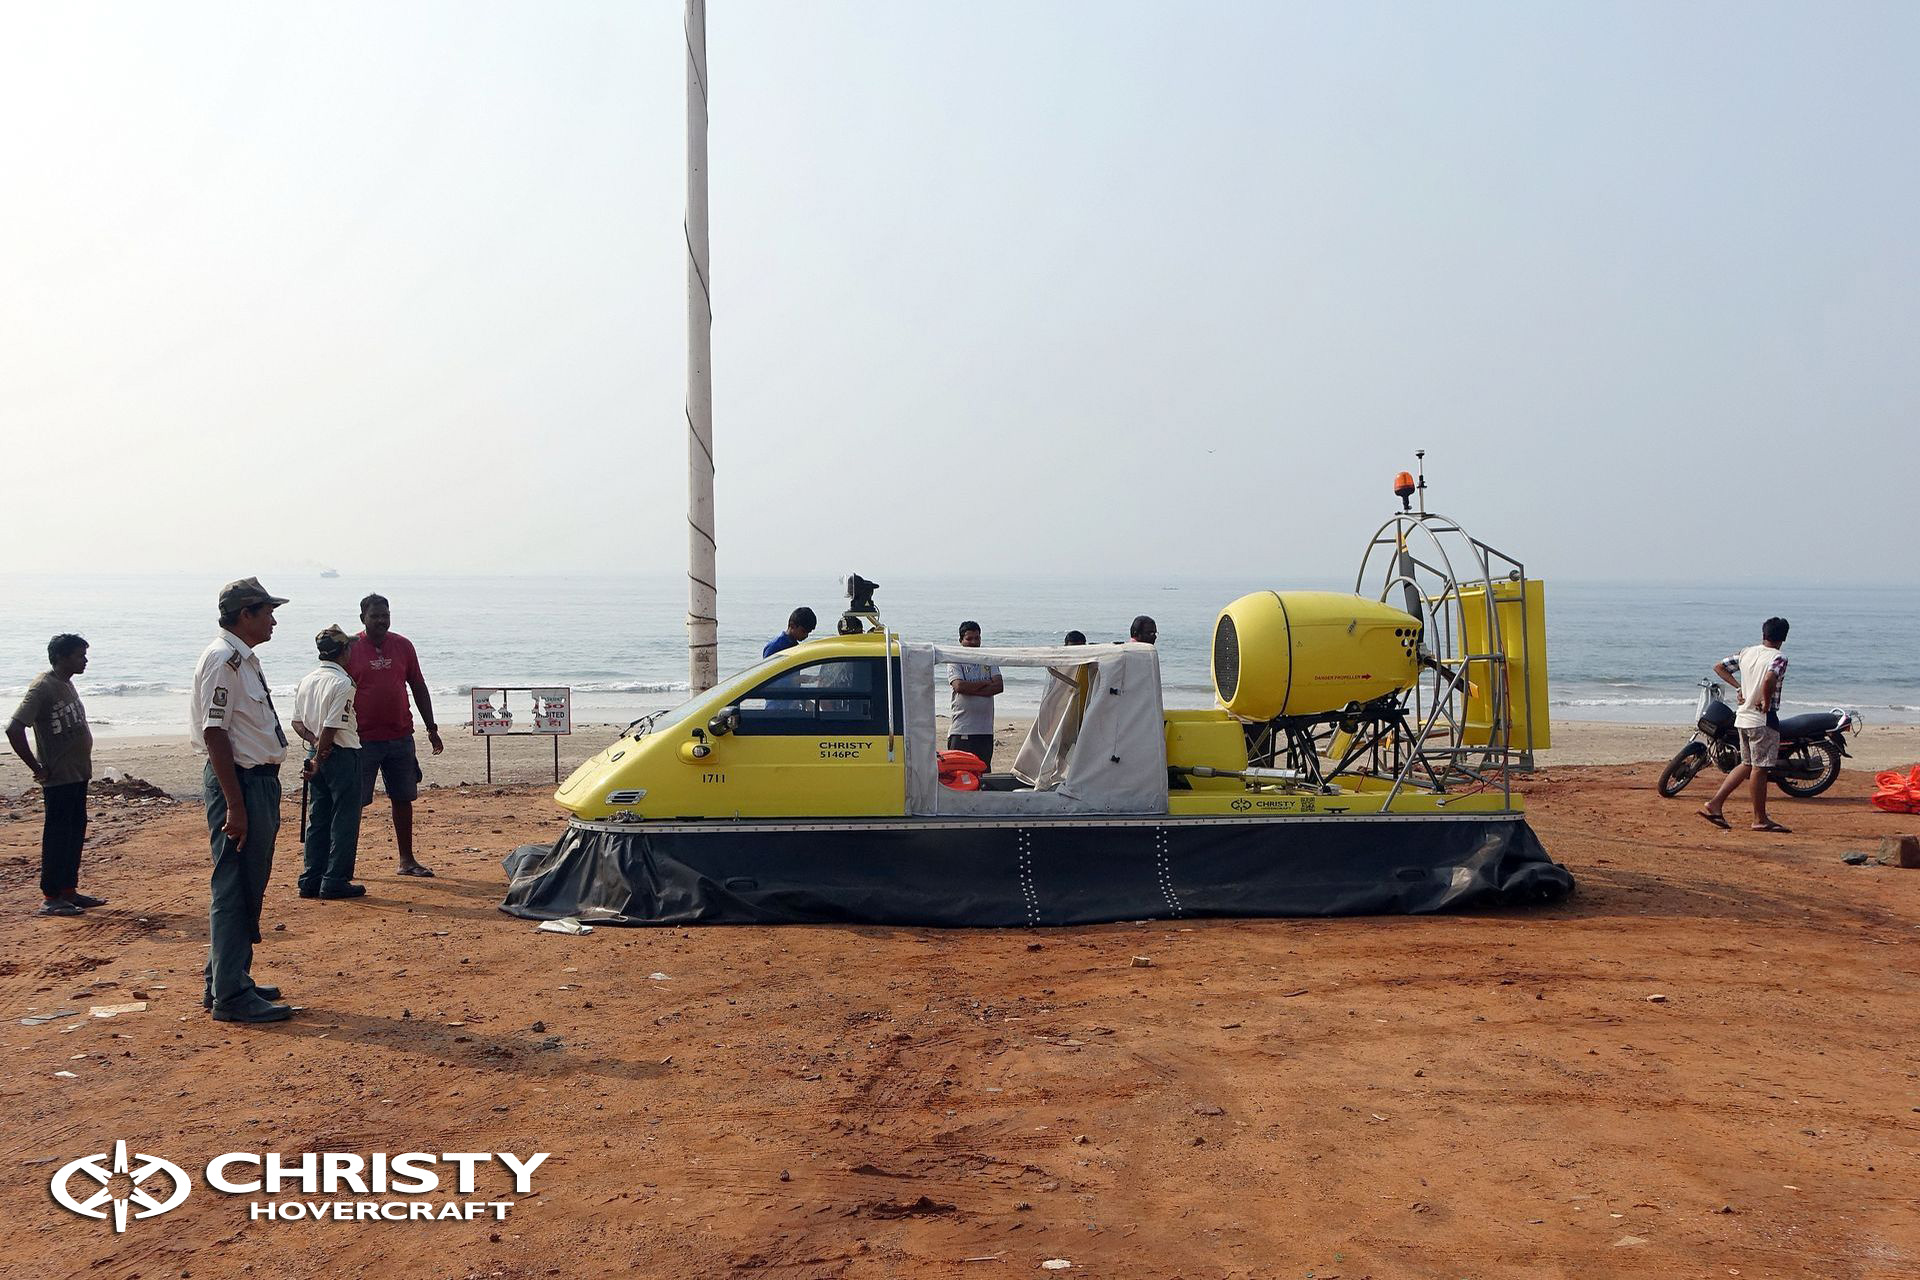 hovercraft-christy-5_7series-05.jpg | фото №41